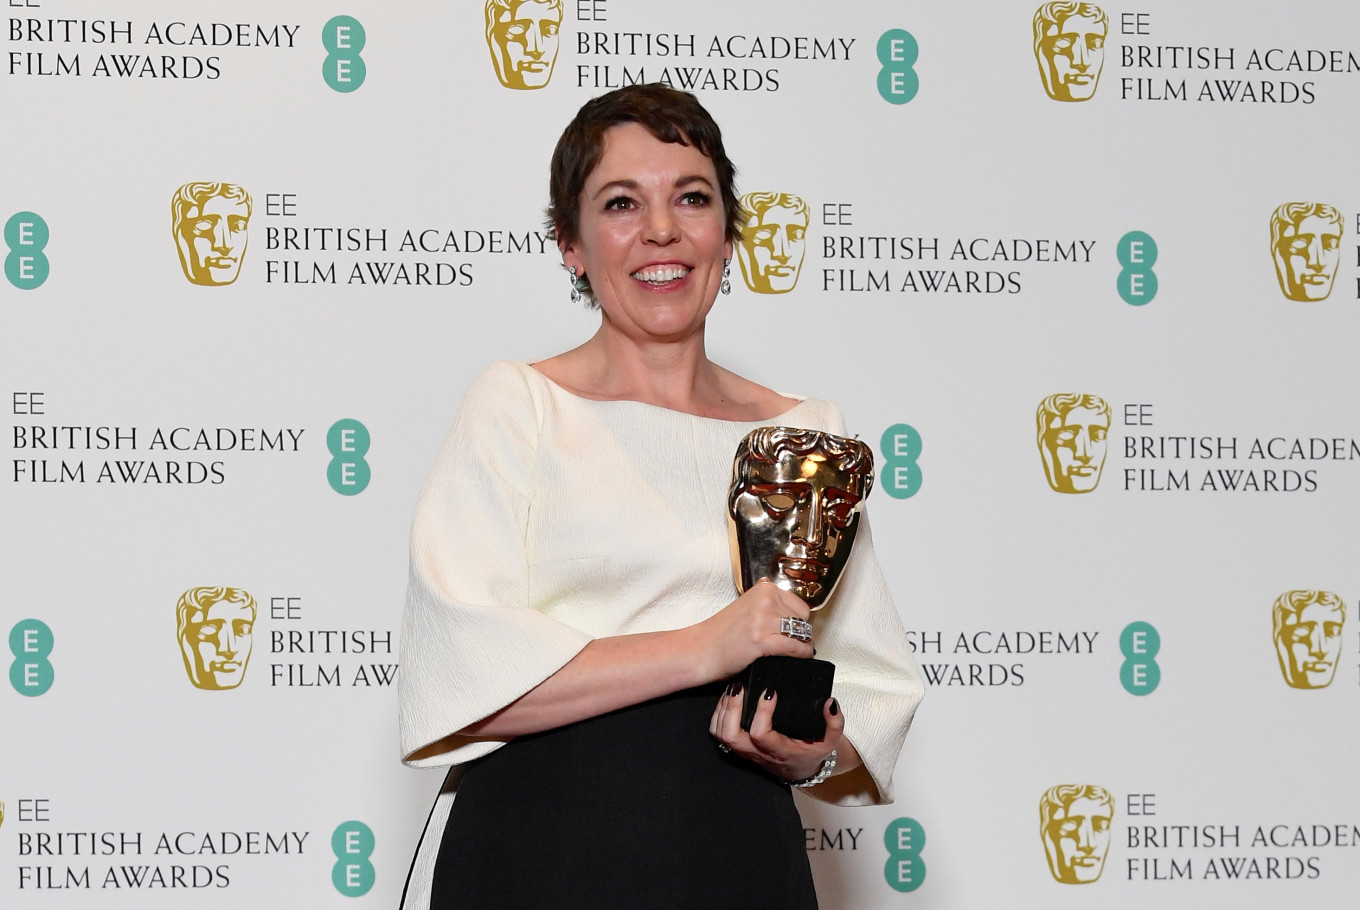 'The Favourite' rules BAFTAs with most wins, 'Roma' takes top prize